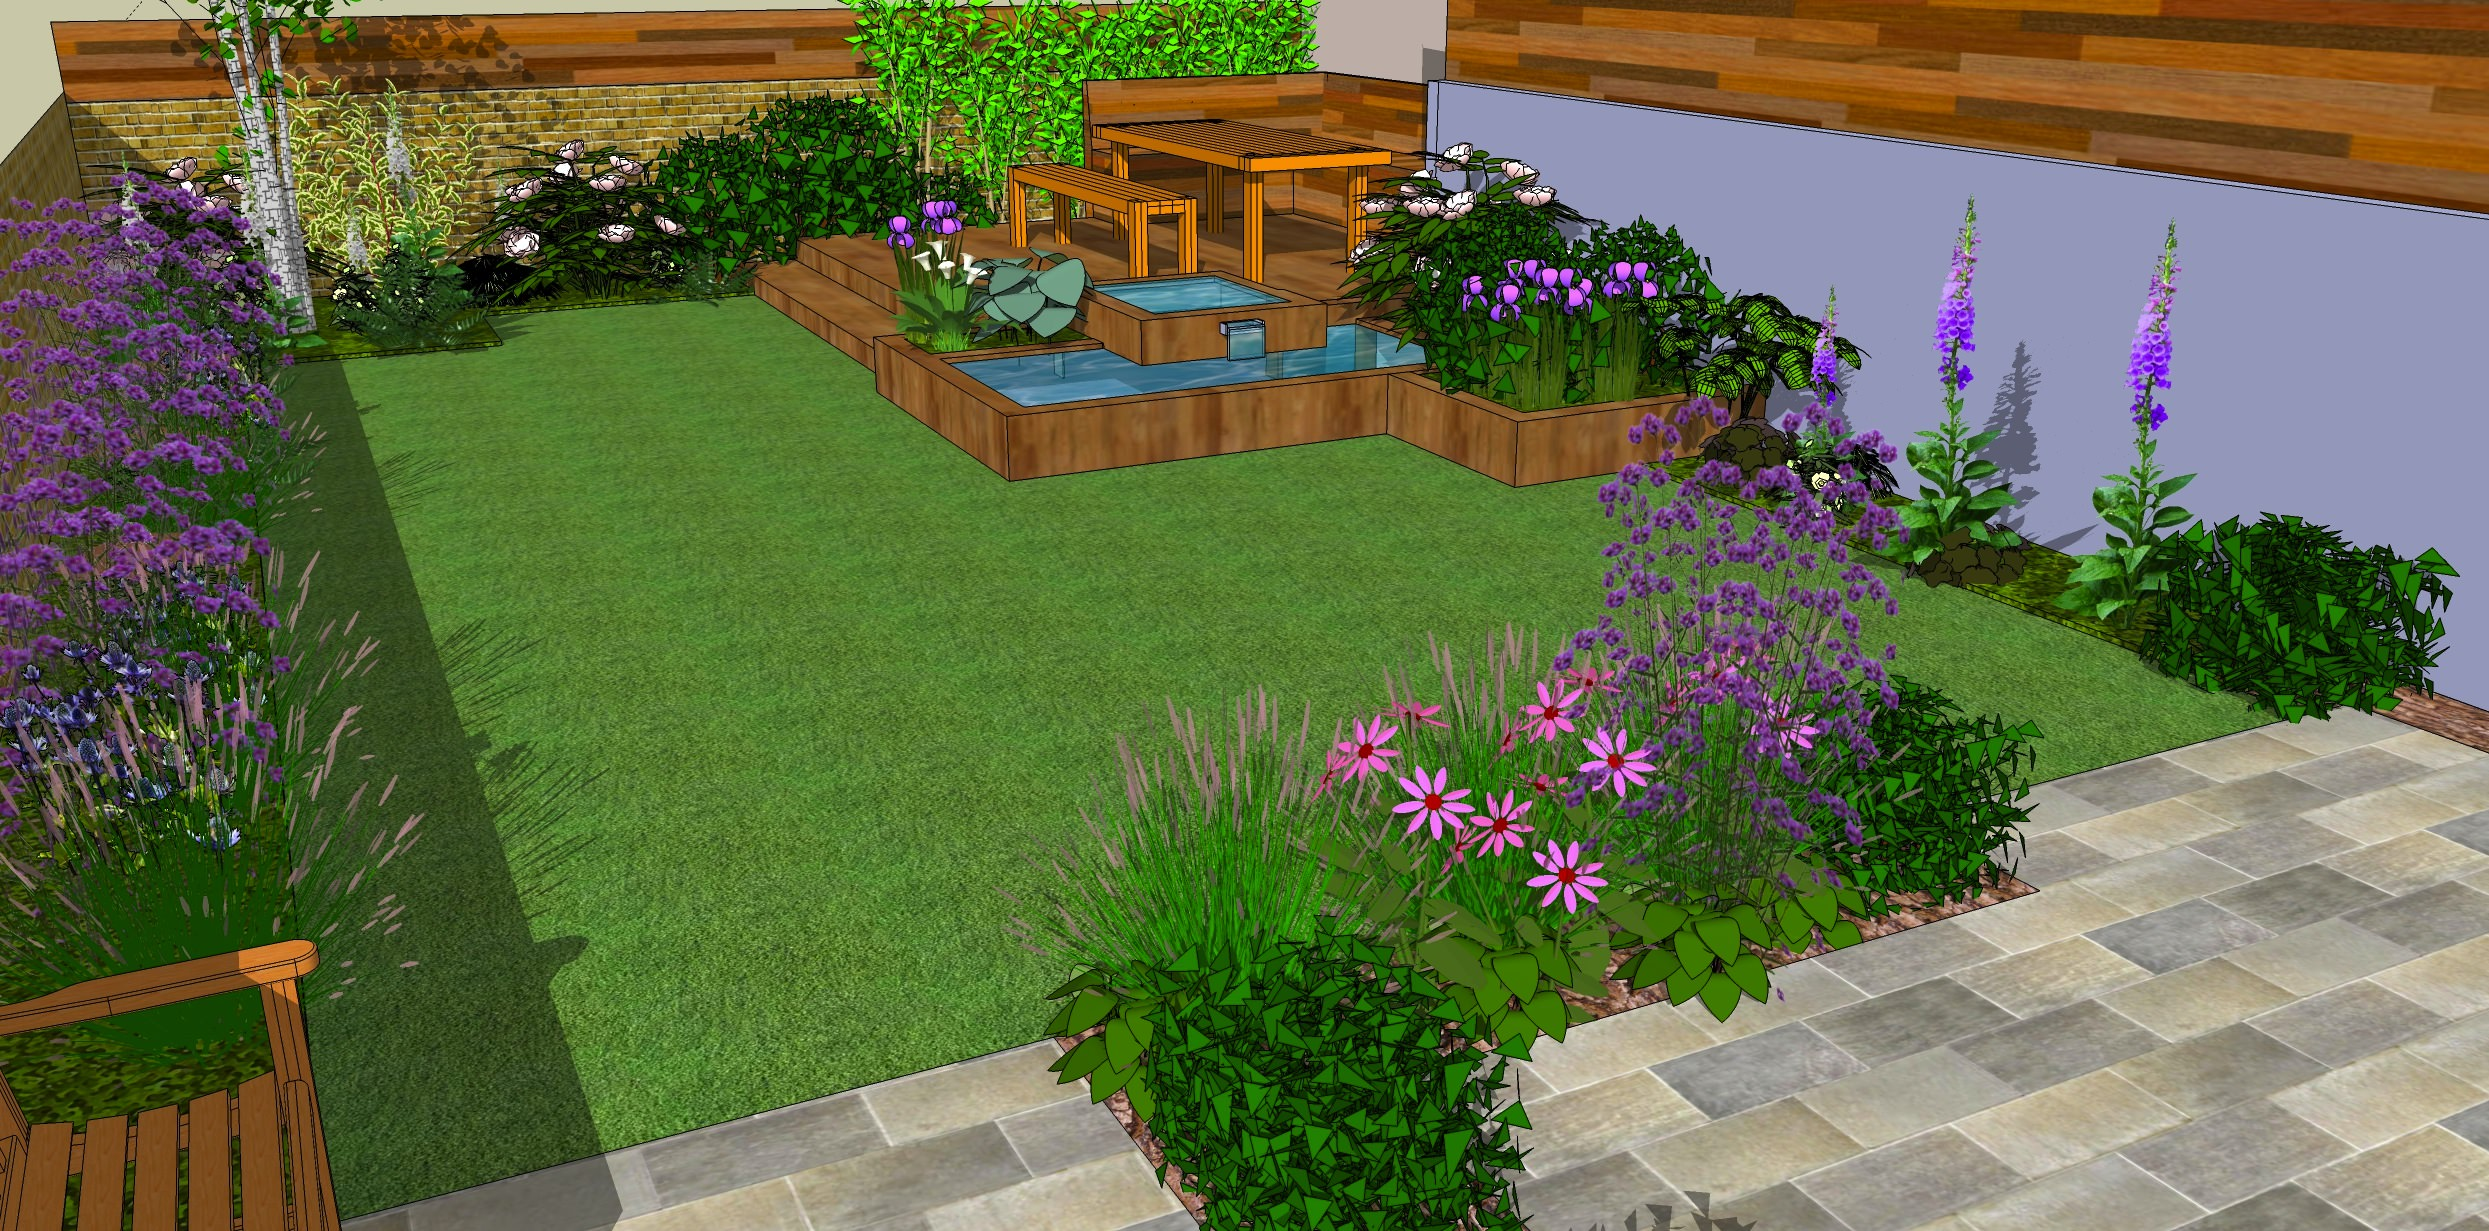 Low maintenance garden designs garden club london for Backyard design plans